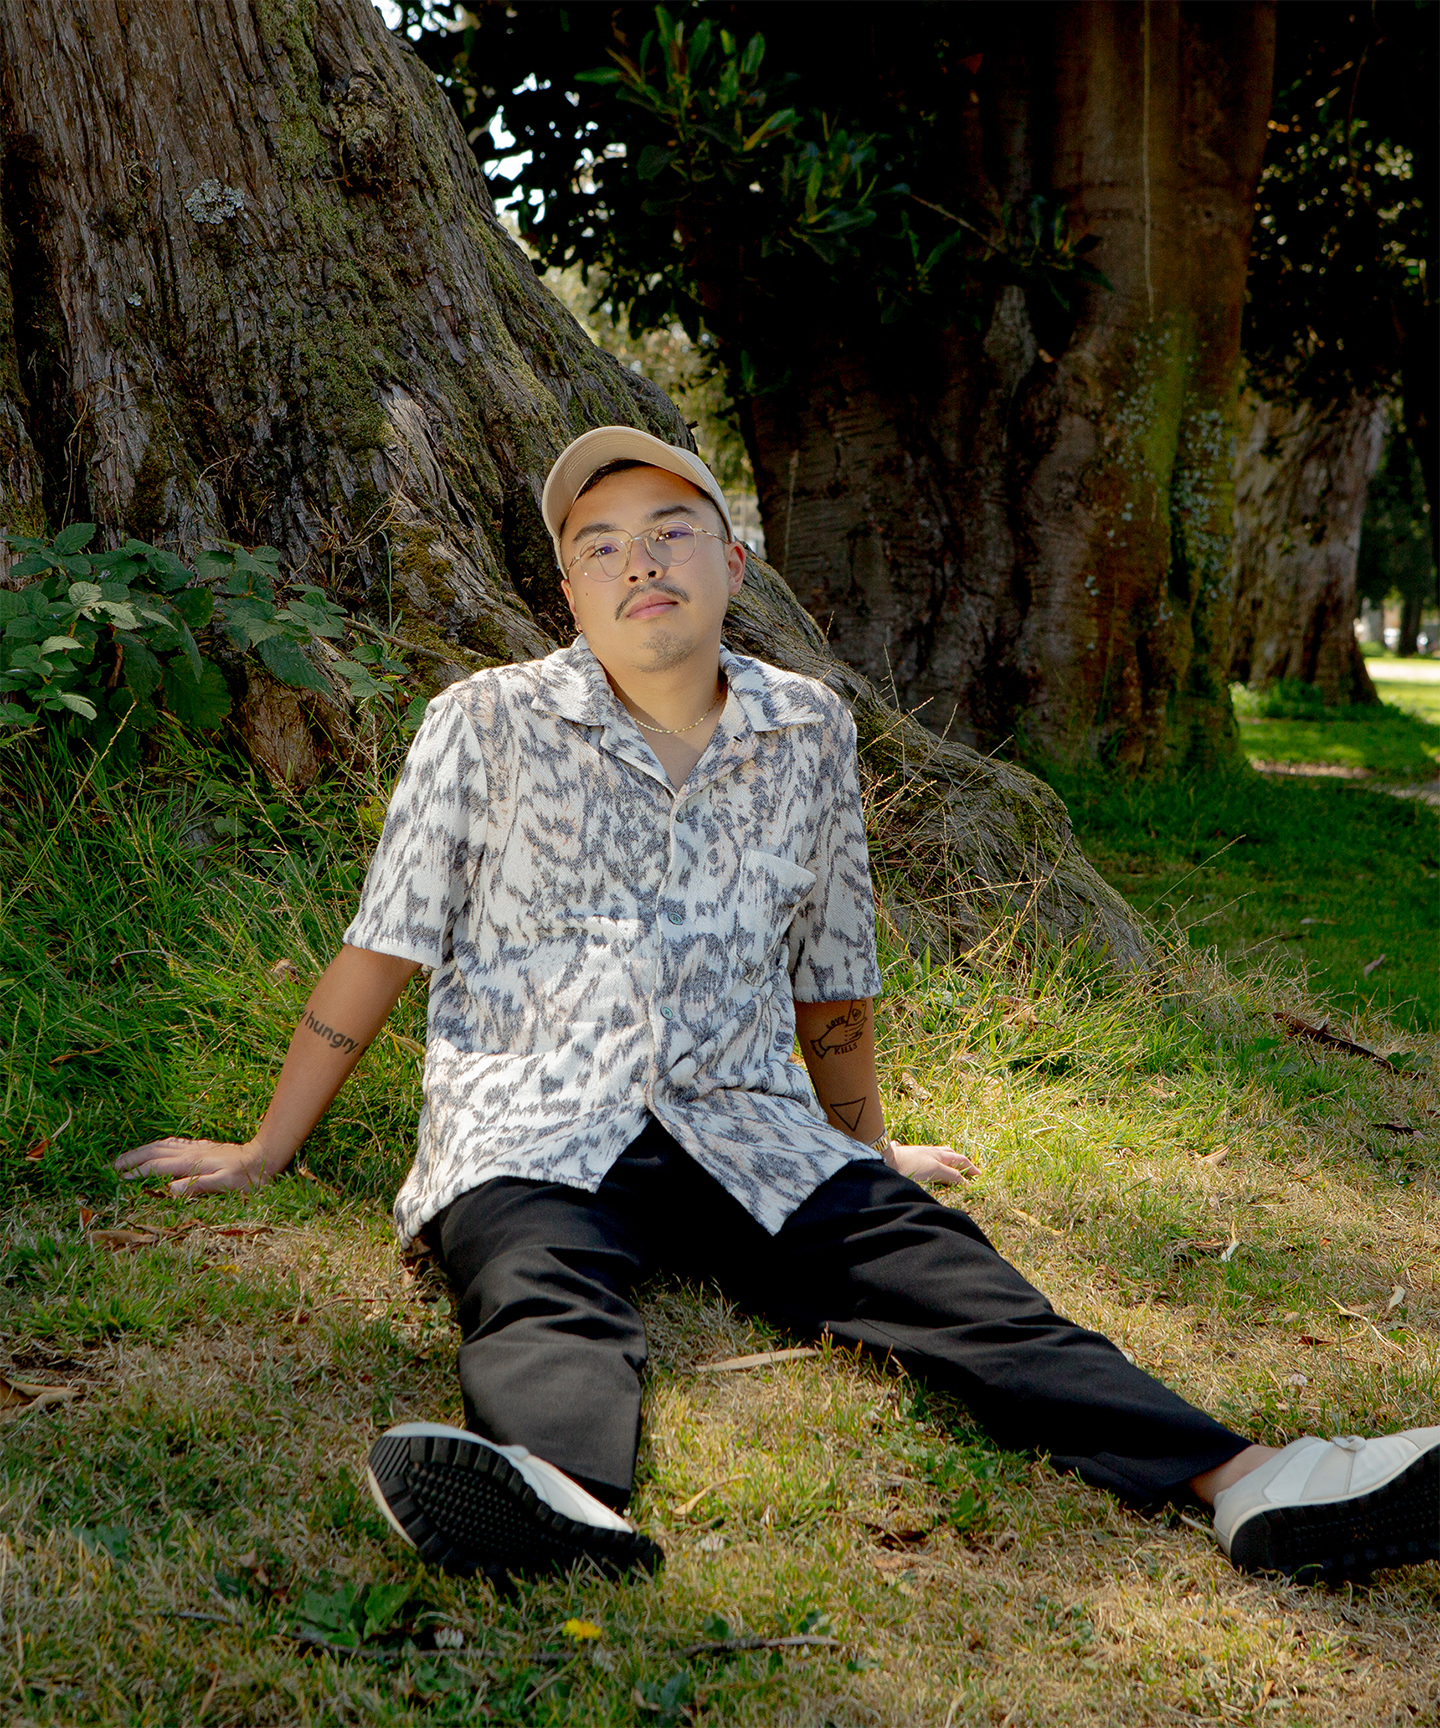 Kris Mendoza sitting on grass